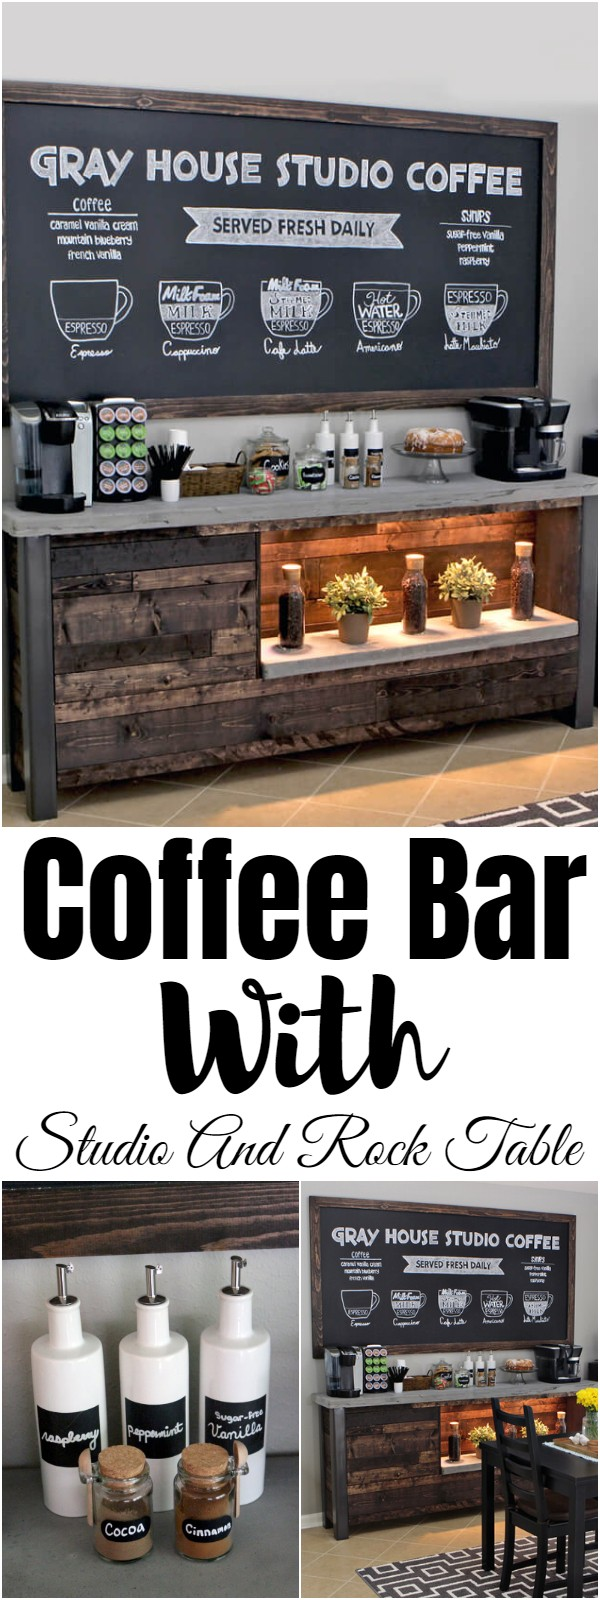 Coffee Bar With Studio And Rock Table